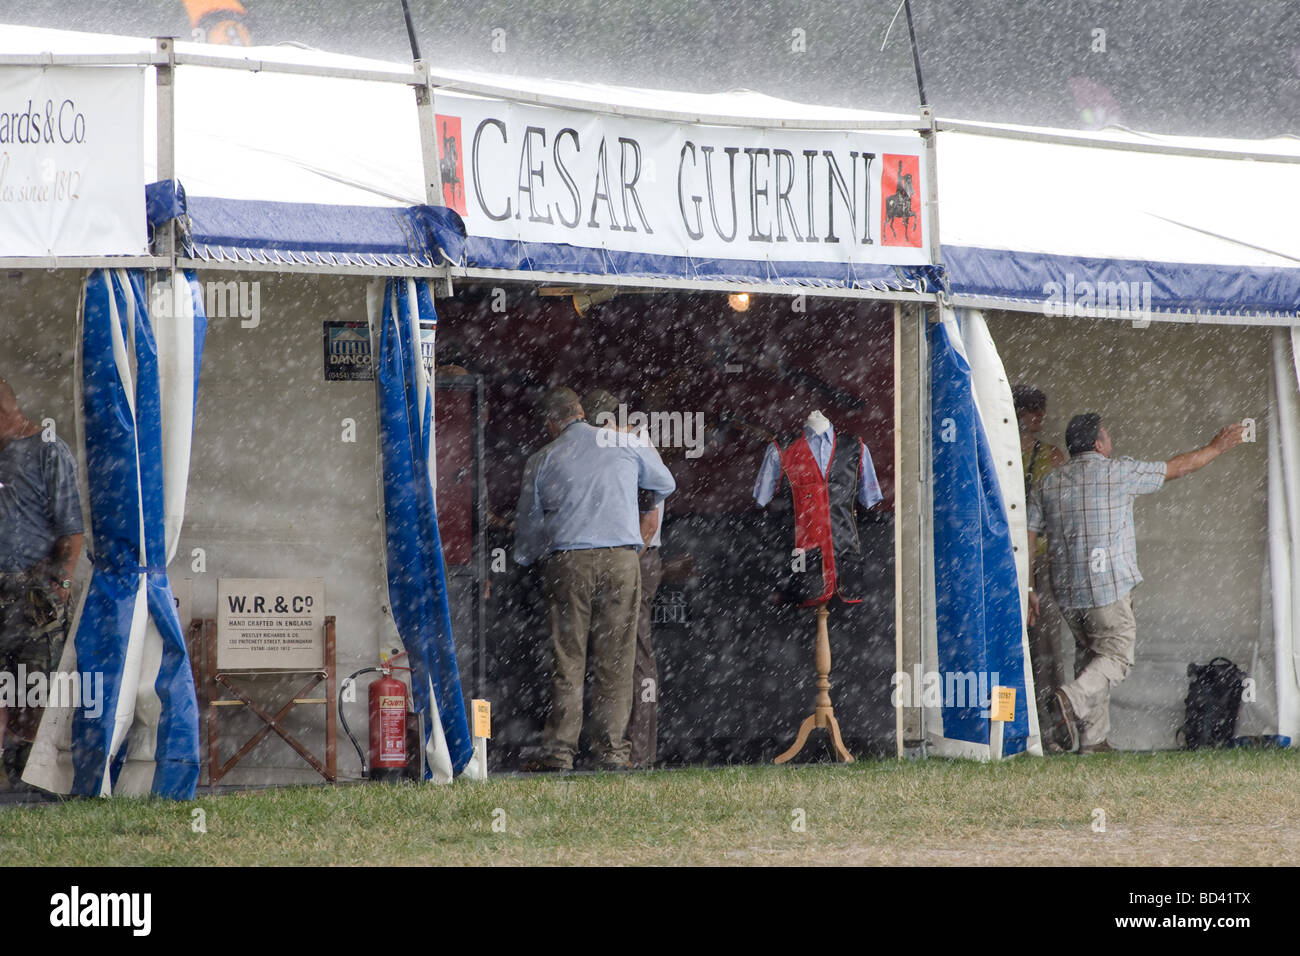 Crowds Sheltering From The Rain At A Game Fair - Stock Image